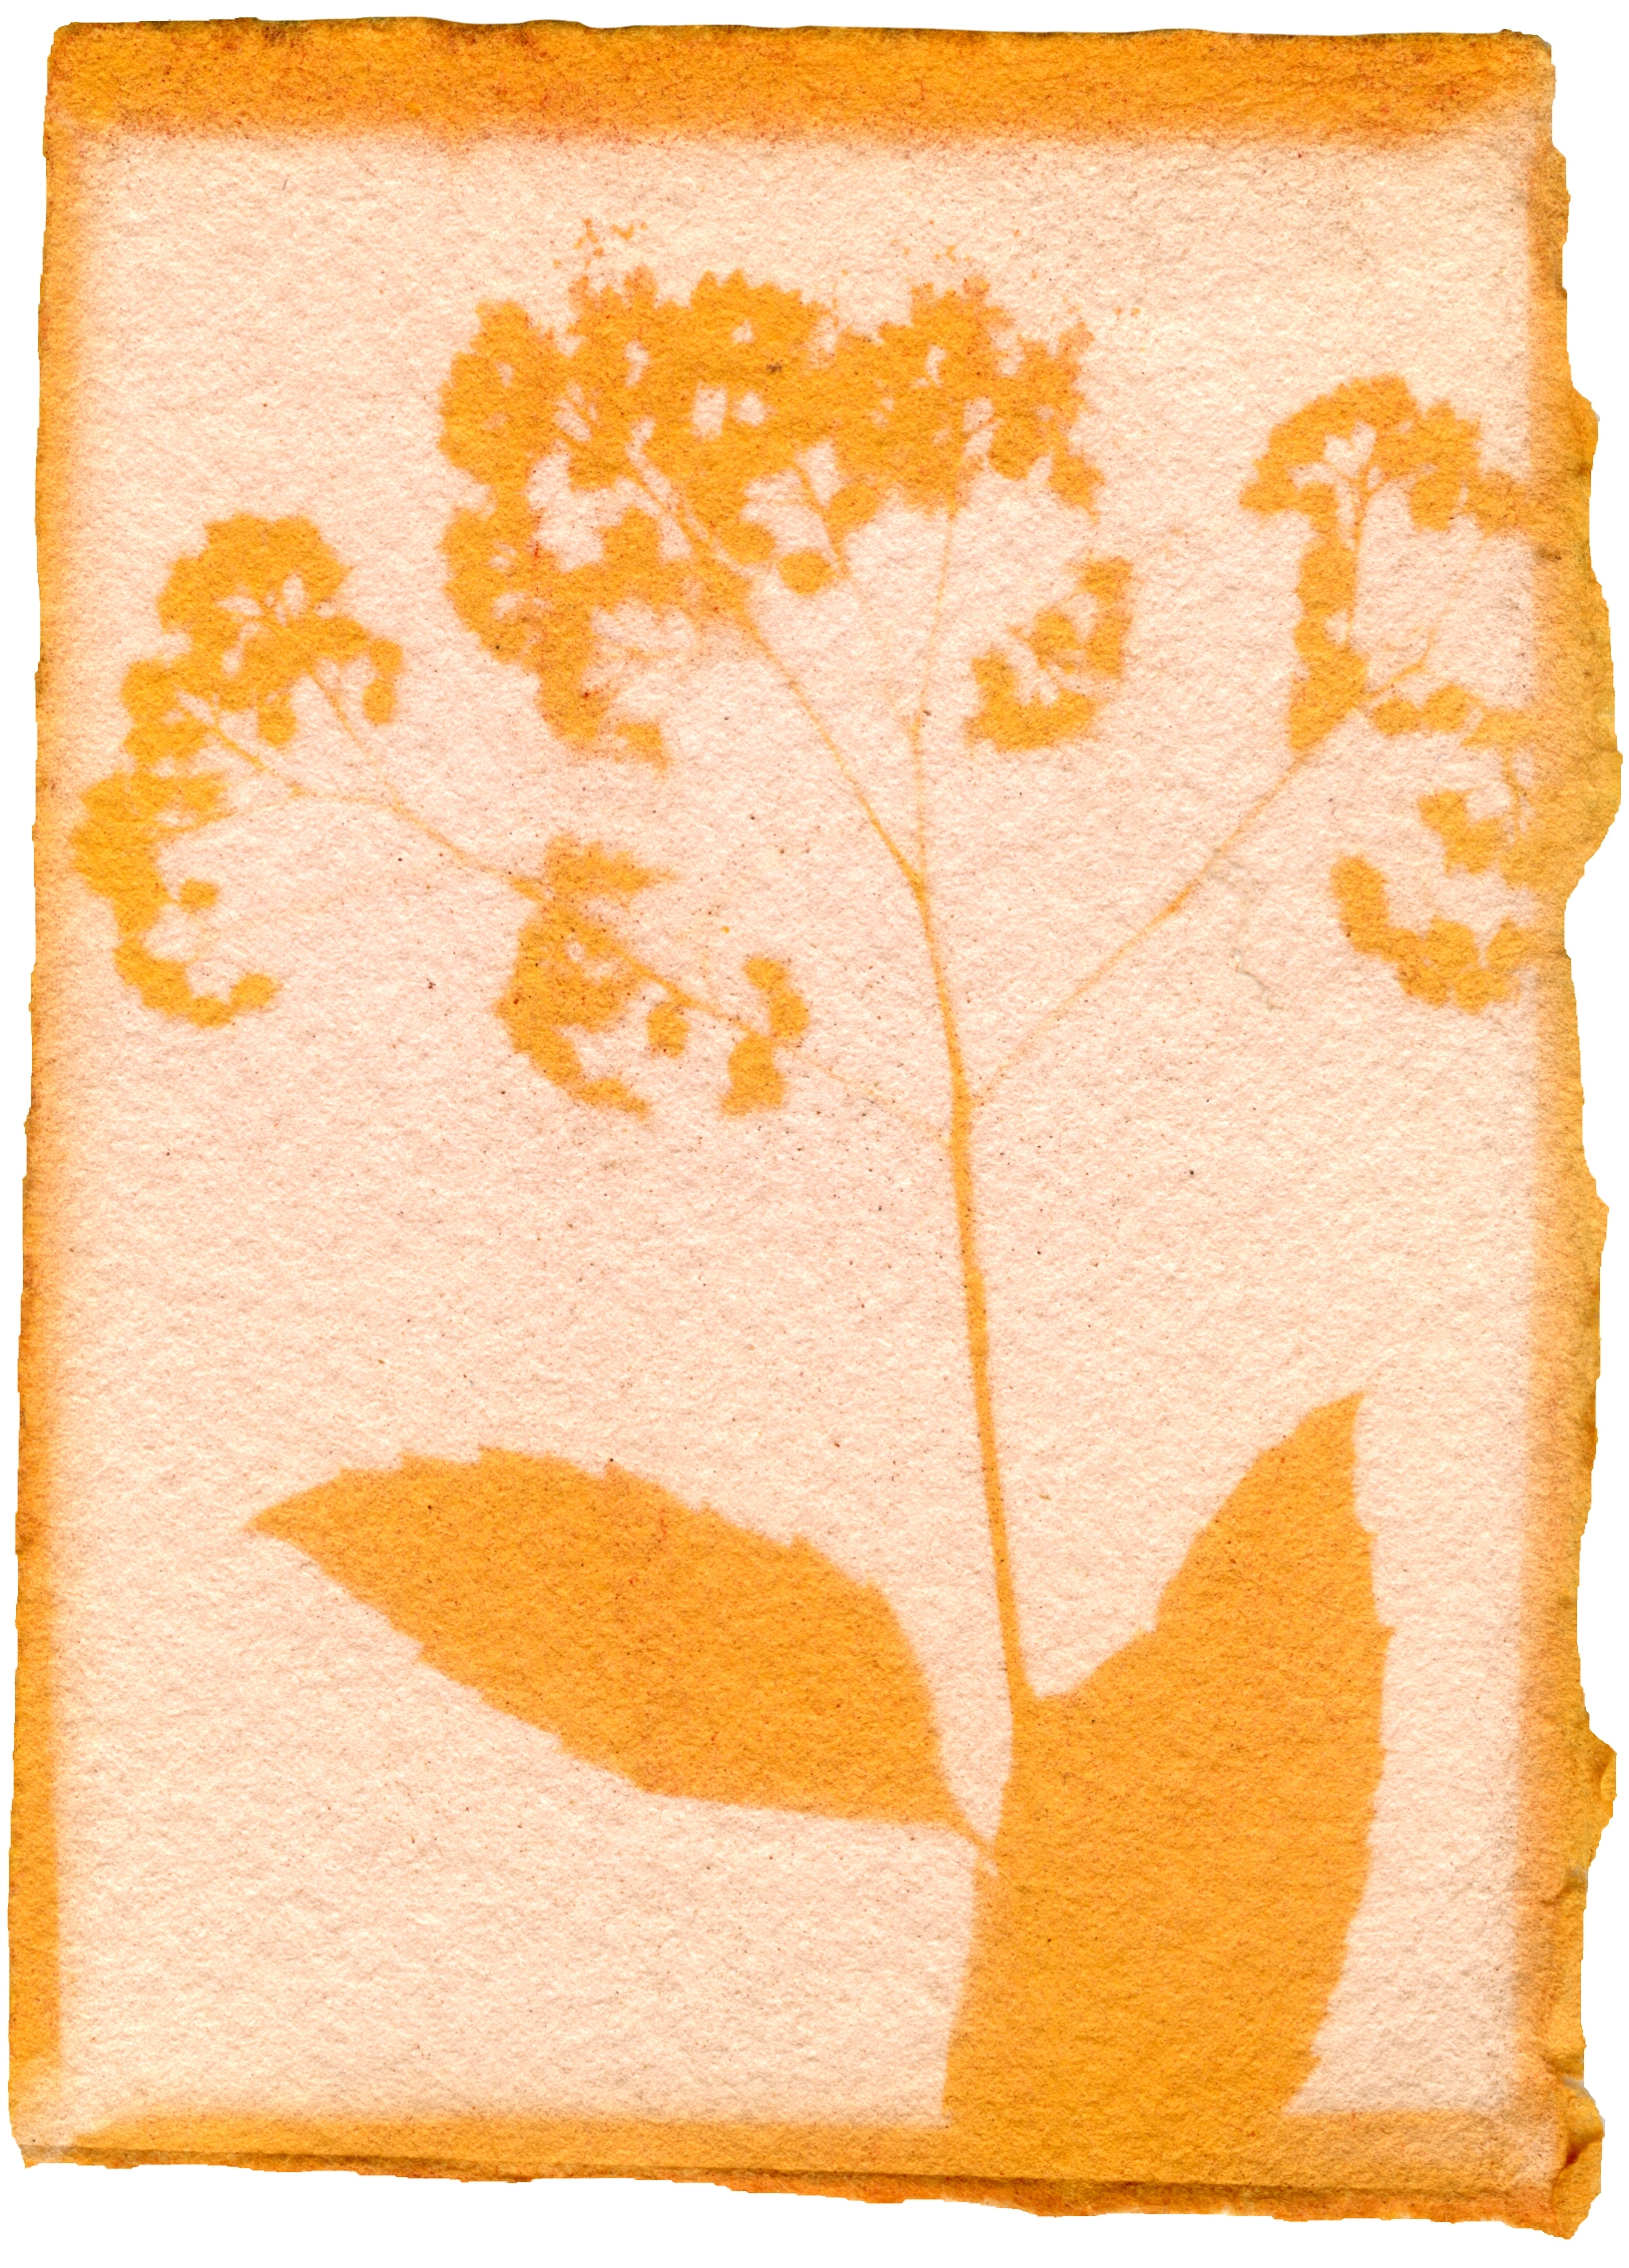 "Spiraea Japonica with Achiote Emulsion, 3.5"" x 2.5"", 2018"